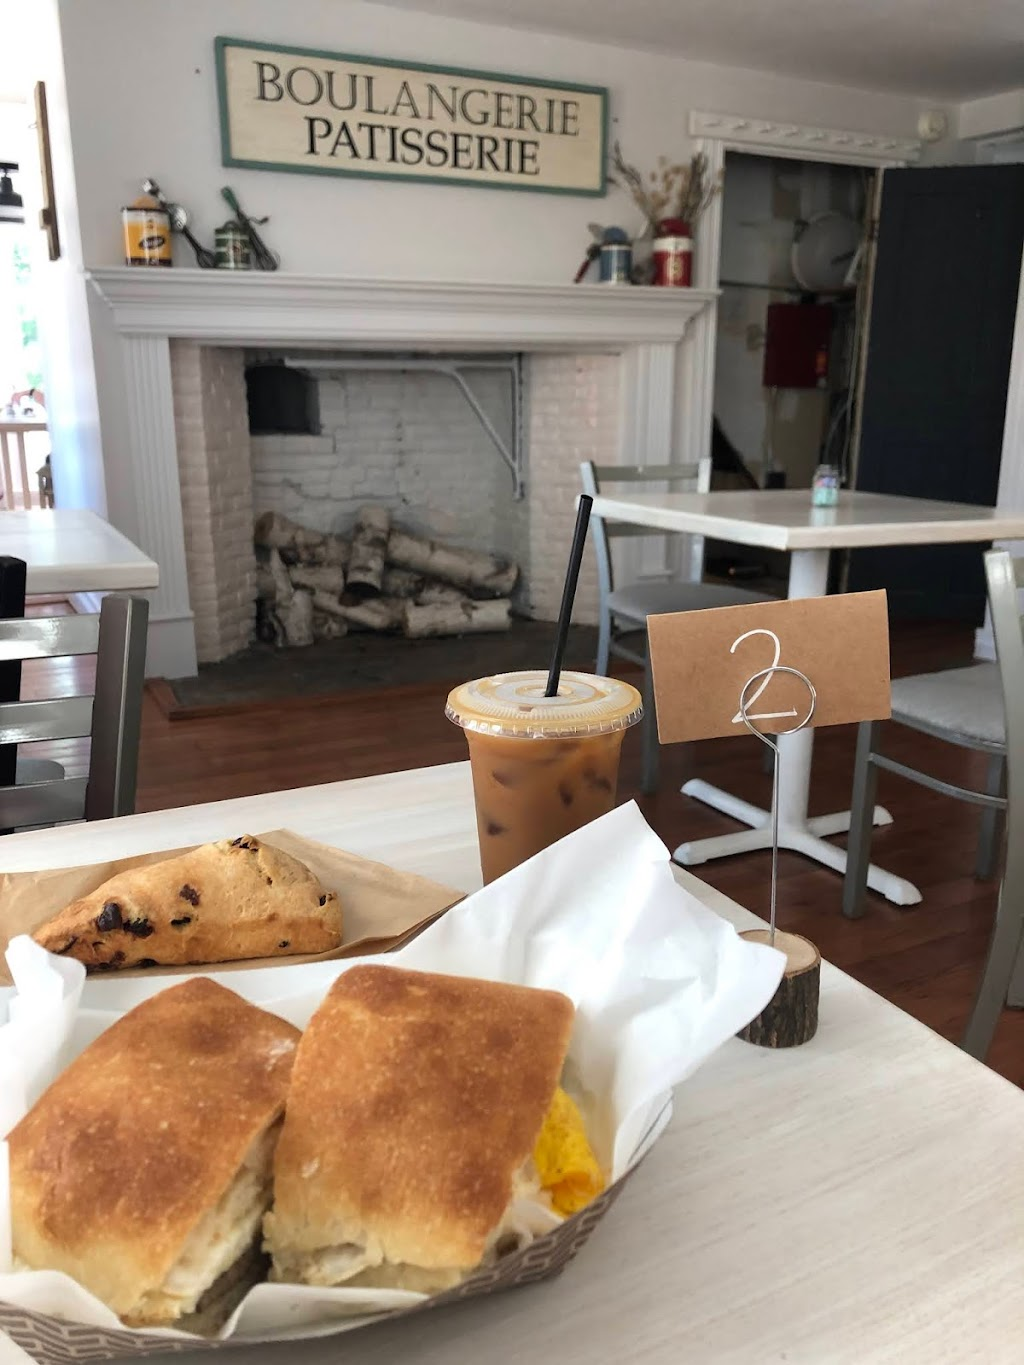 Uncle Matts Bakery and Cafe   bakery   105 Church Hill Rd, Sandy Hook, CT 06482, USA   2033049332 OR +1 203-304-9332